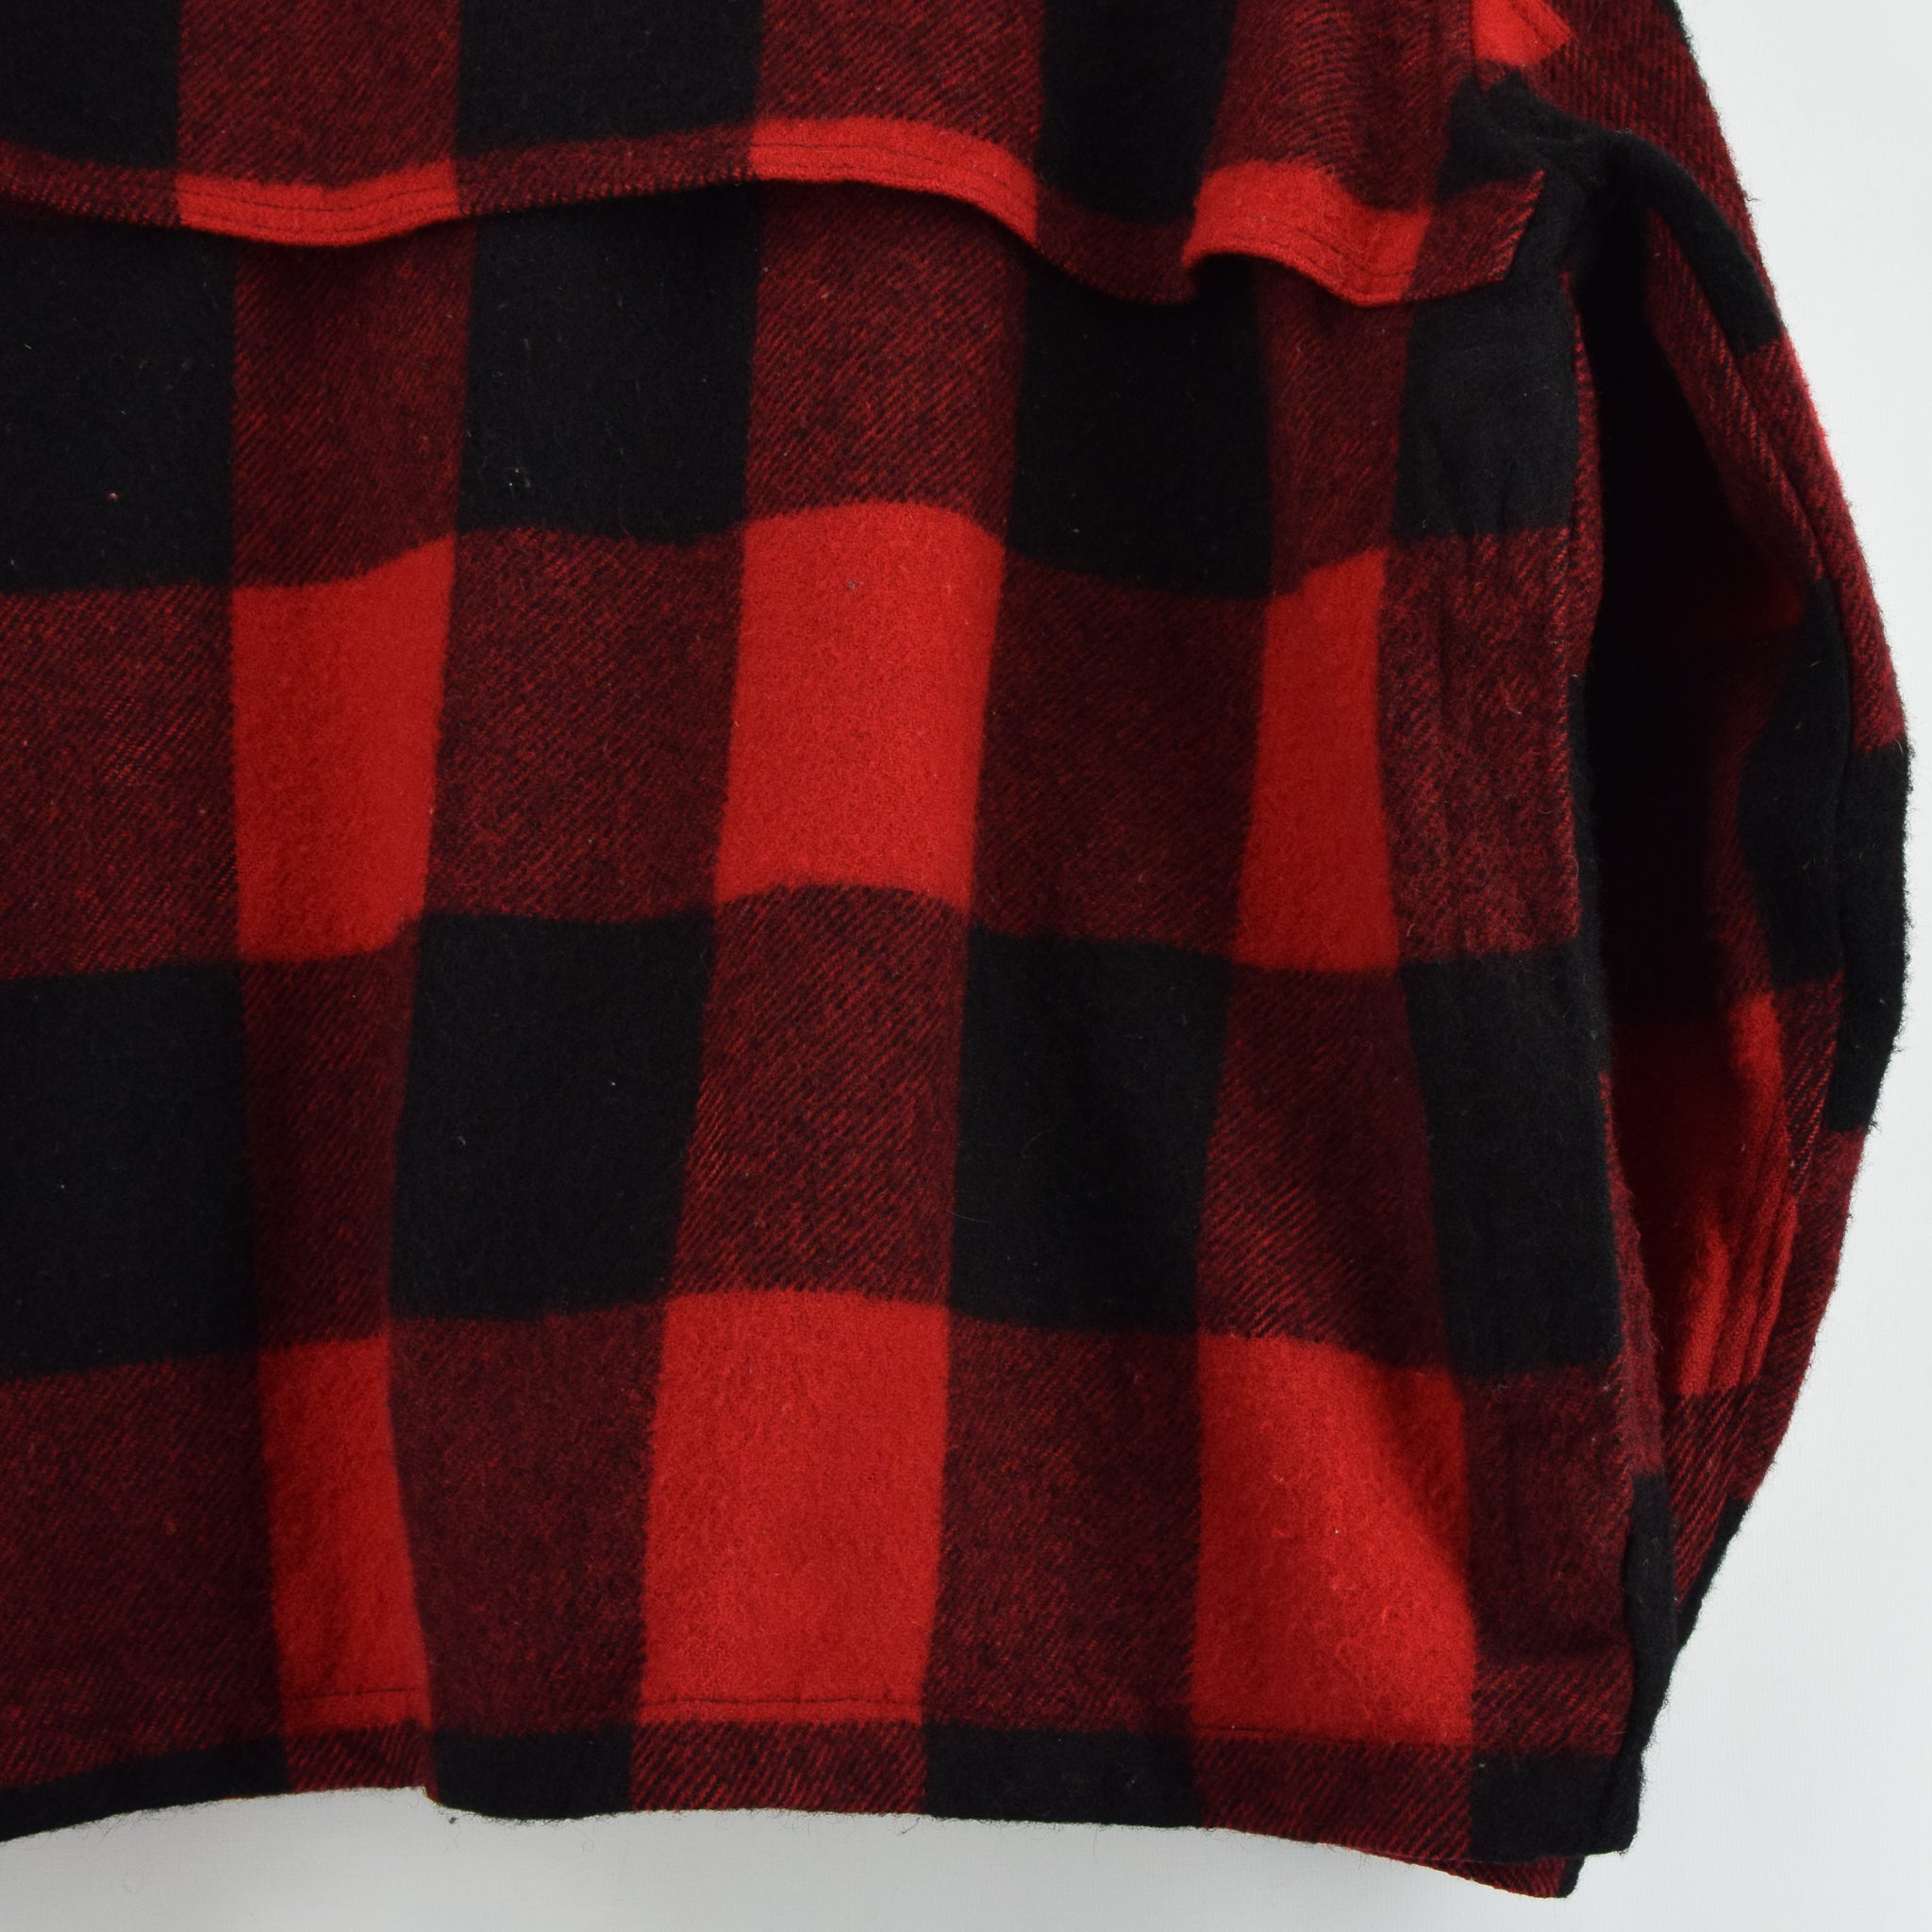 Vintage 70s Woolrich Buffalo Plaid Hunting Mackinaw Shirt Jacket Made in USA XXL back hem